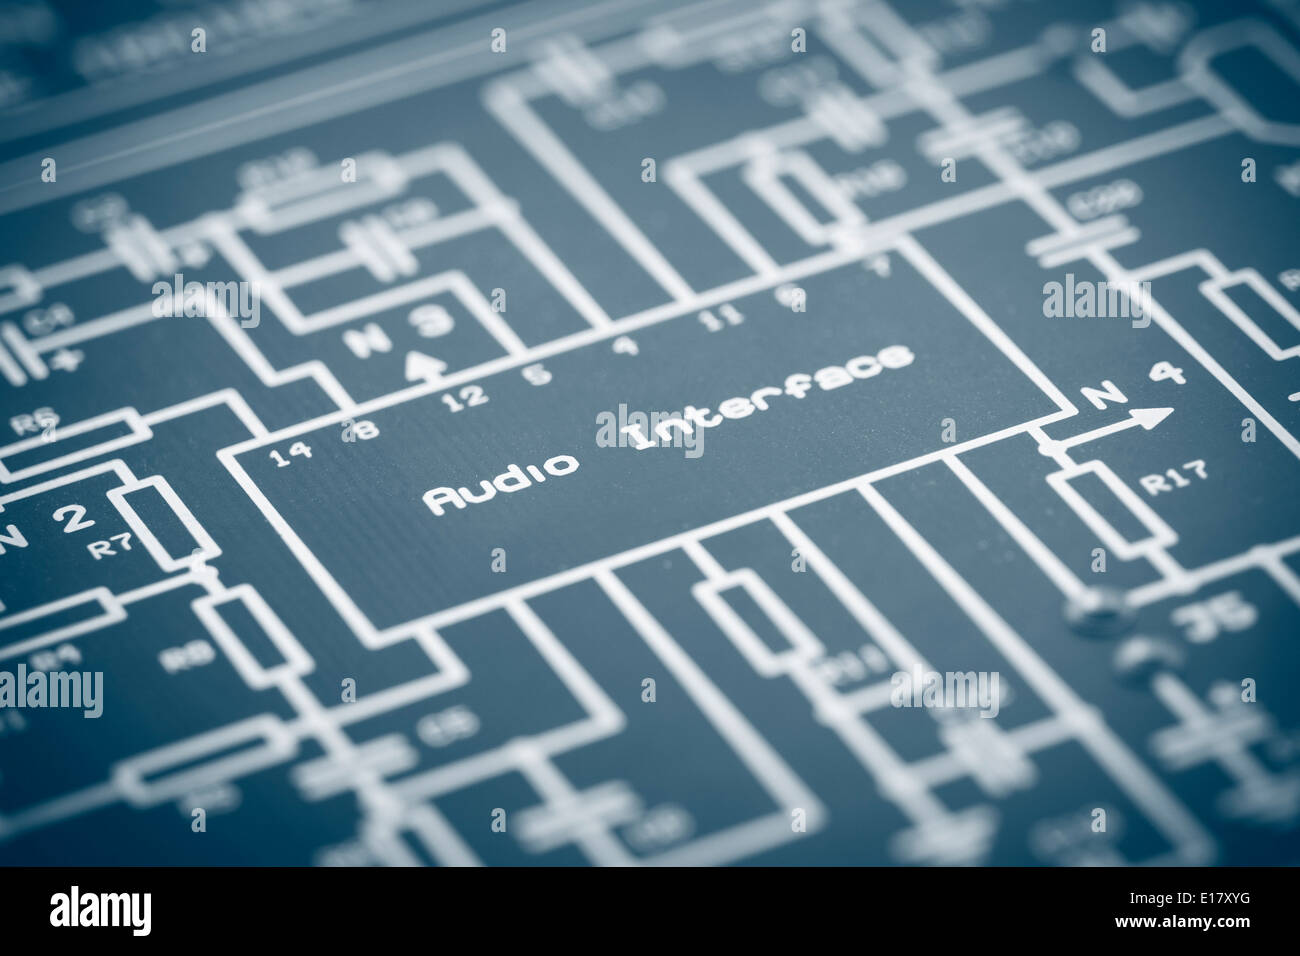 Schematic Electronic Stock Photos & Schematic Electronic Stock ...